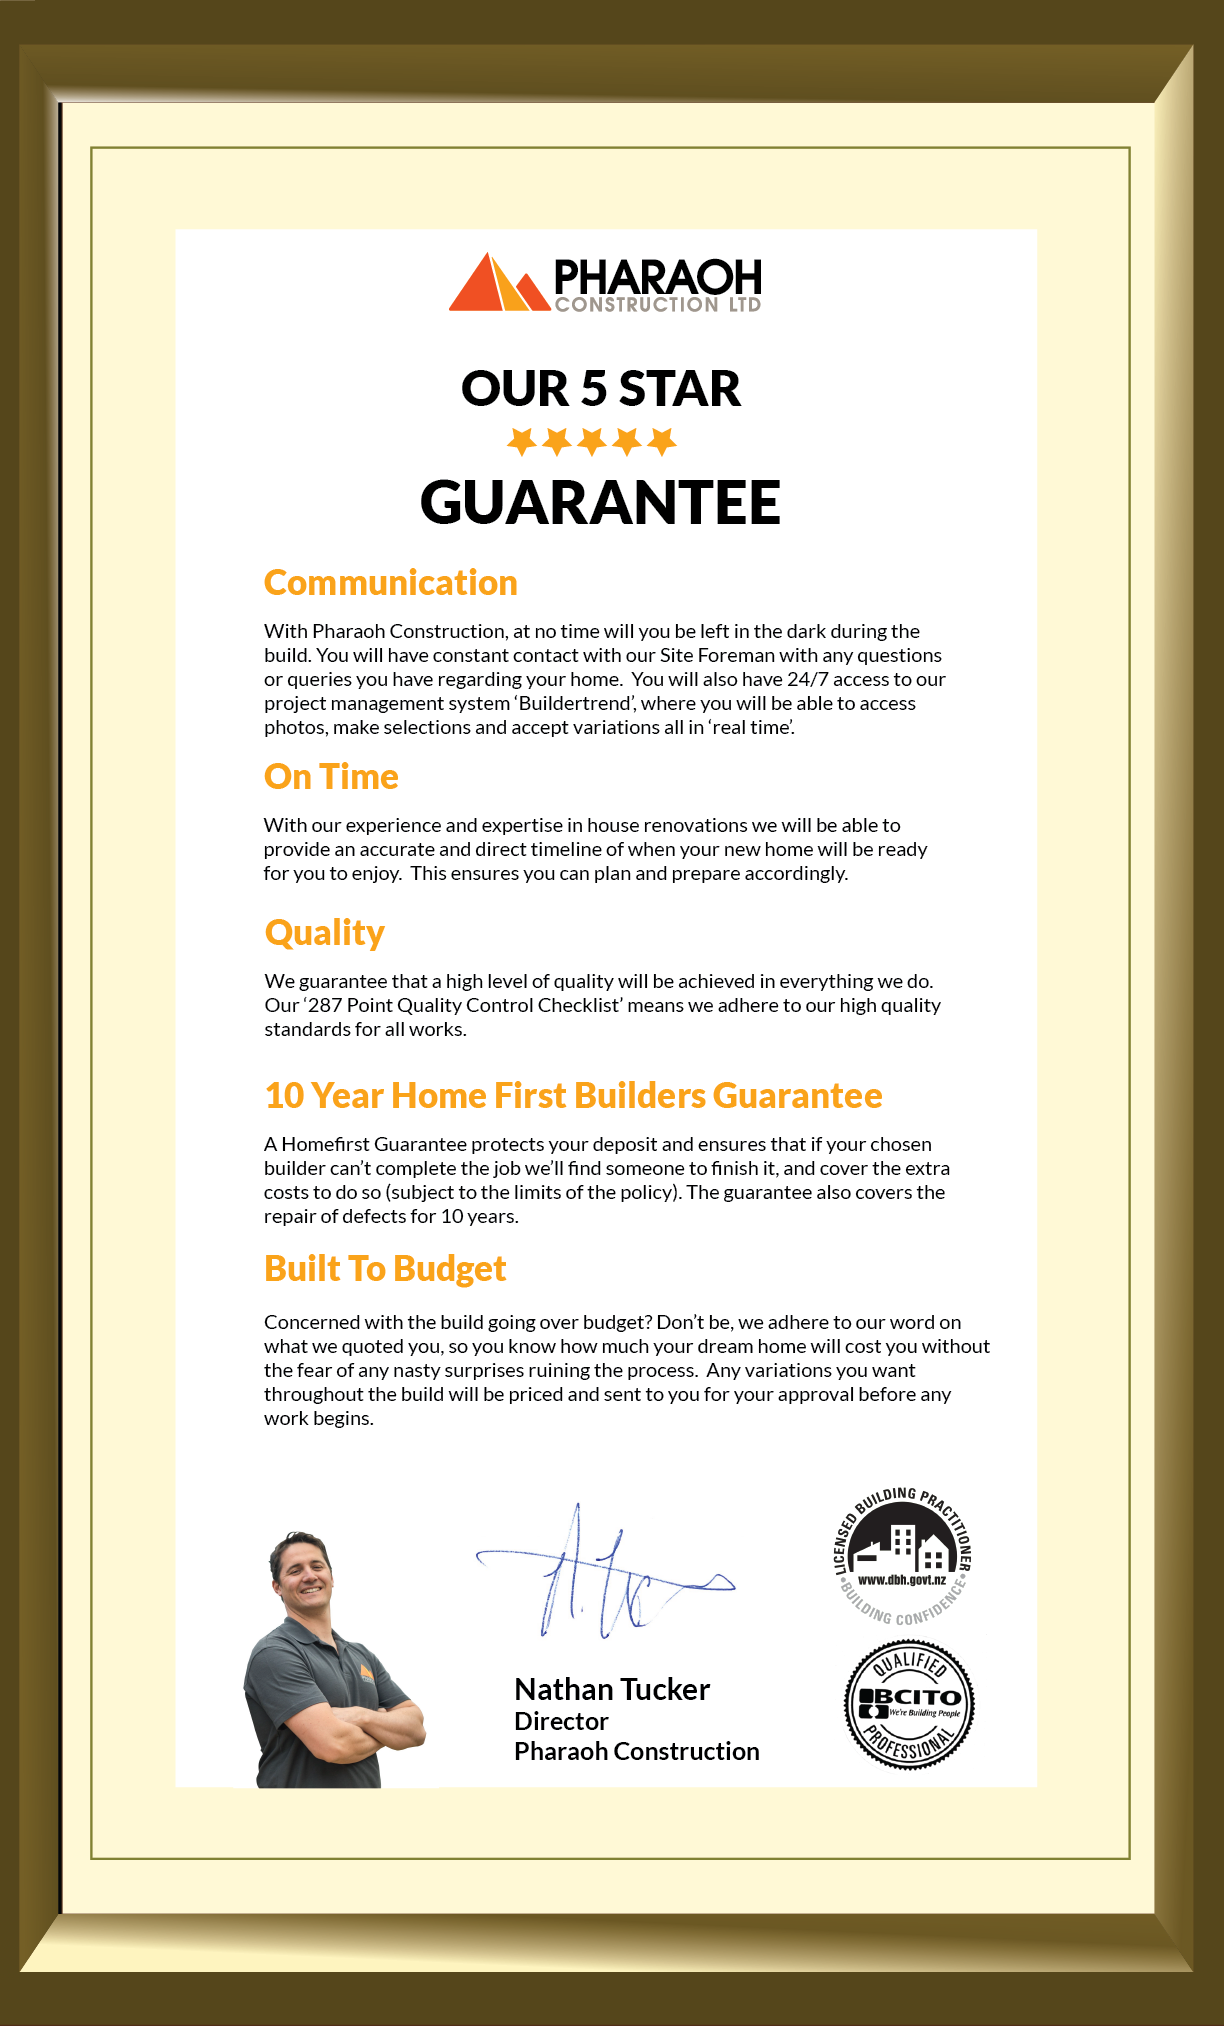 Certificate of 5 star Guarantee